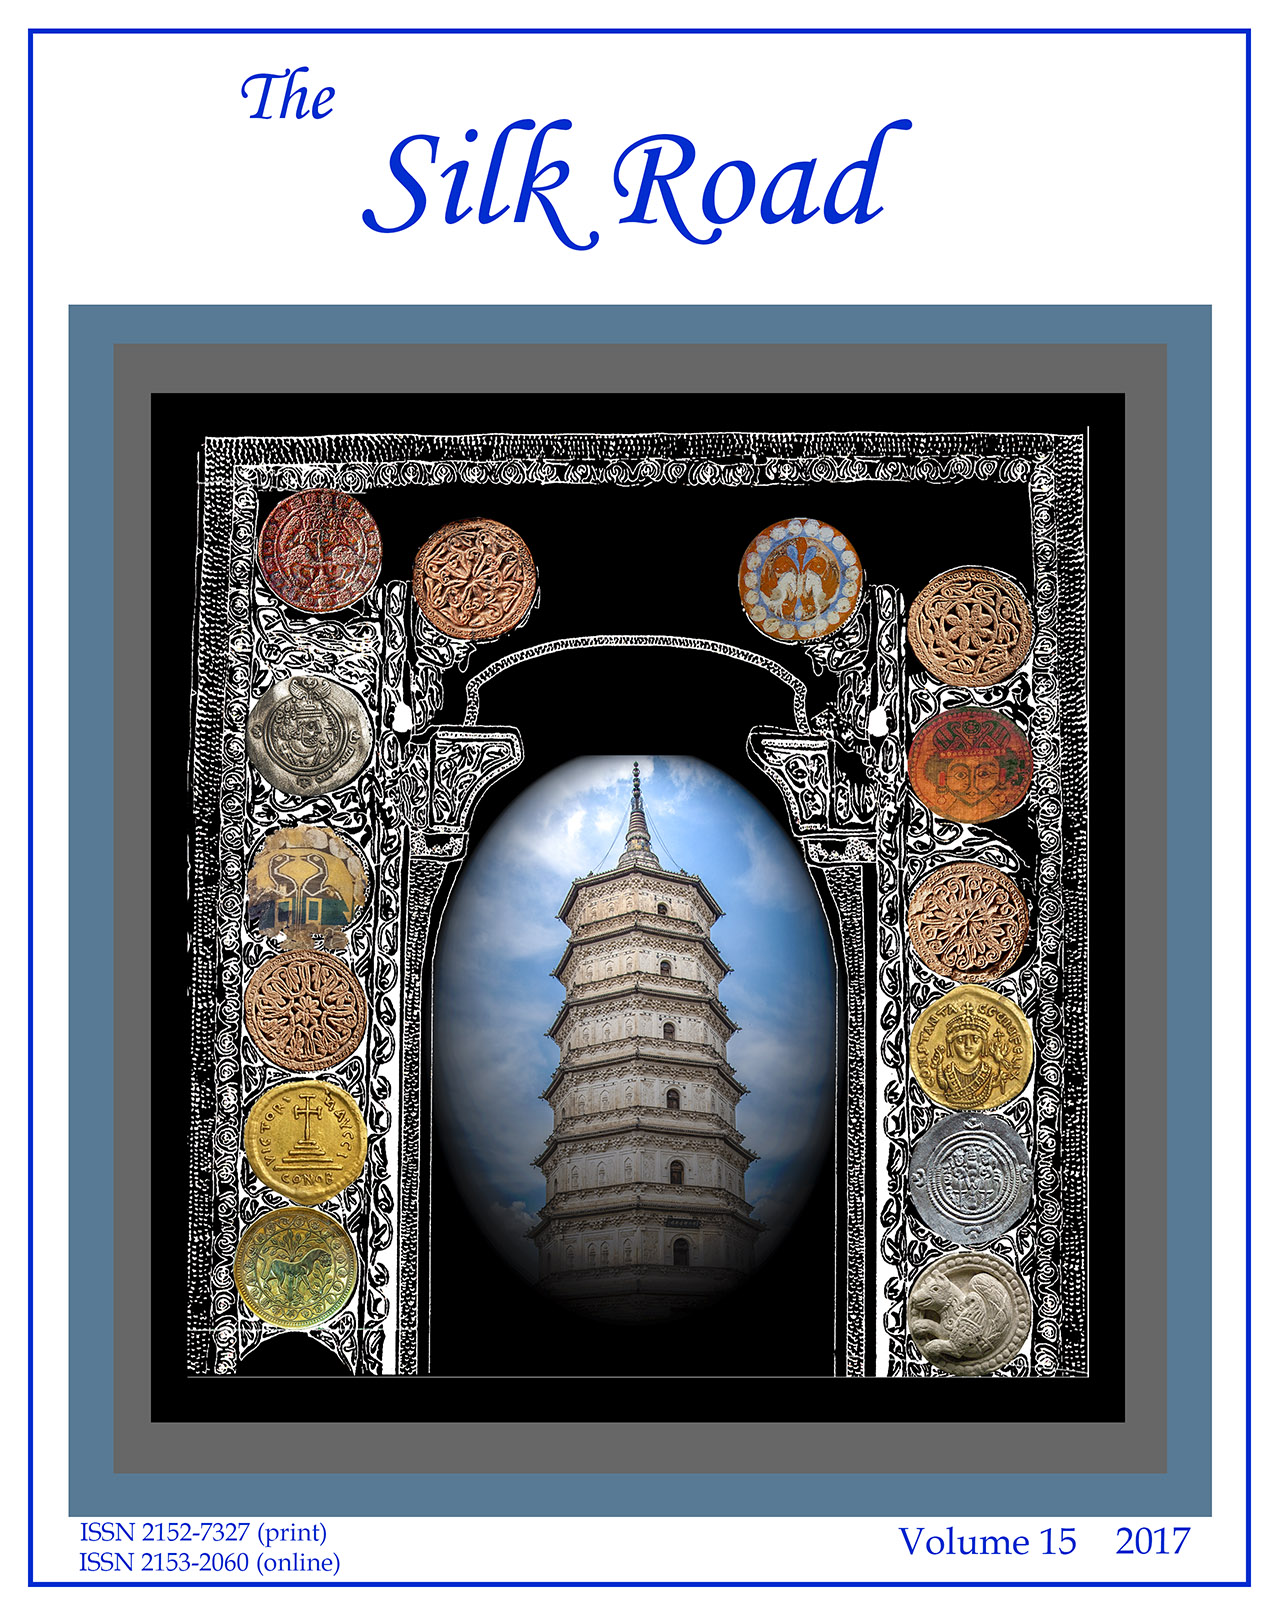 The Silk Road, Volume 15, 2017